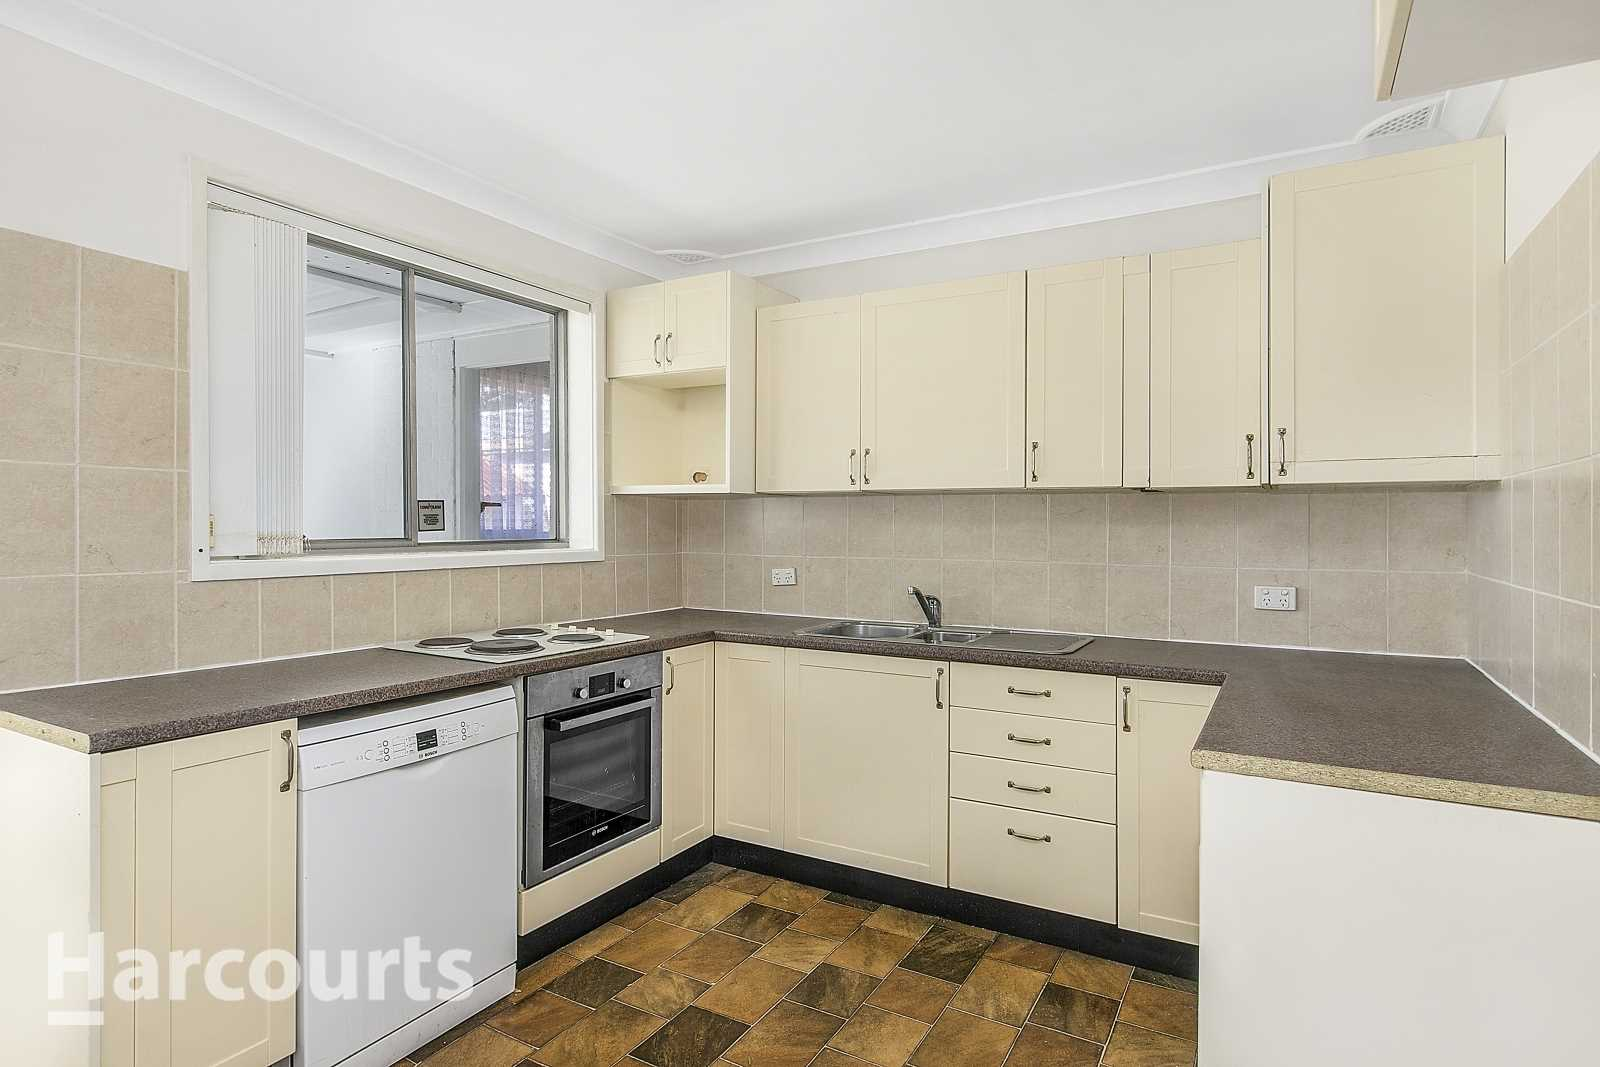 Campbelltown, 38 Raymond Avenue | Harcourts The Property People ...